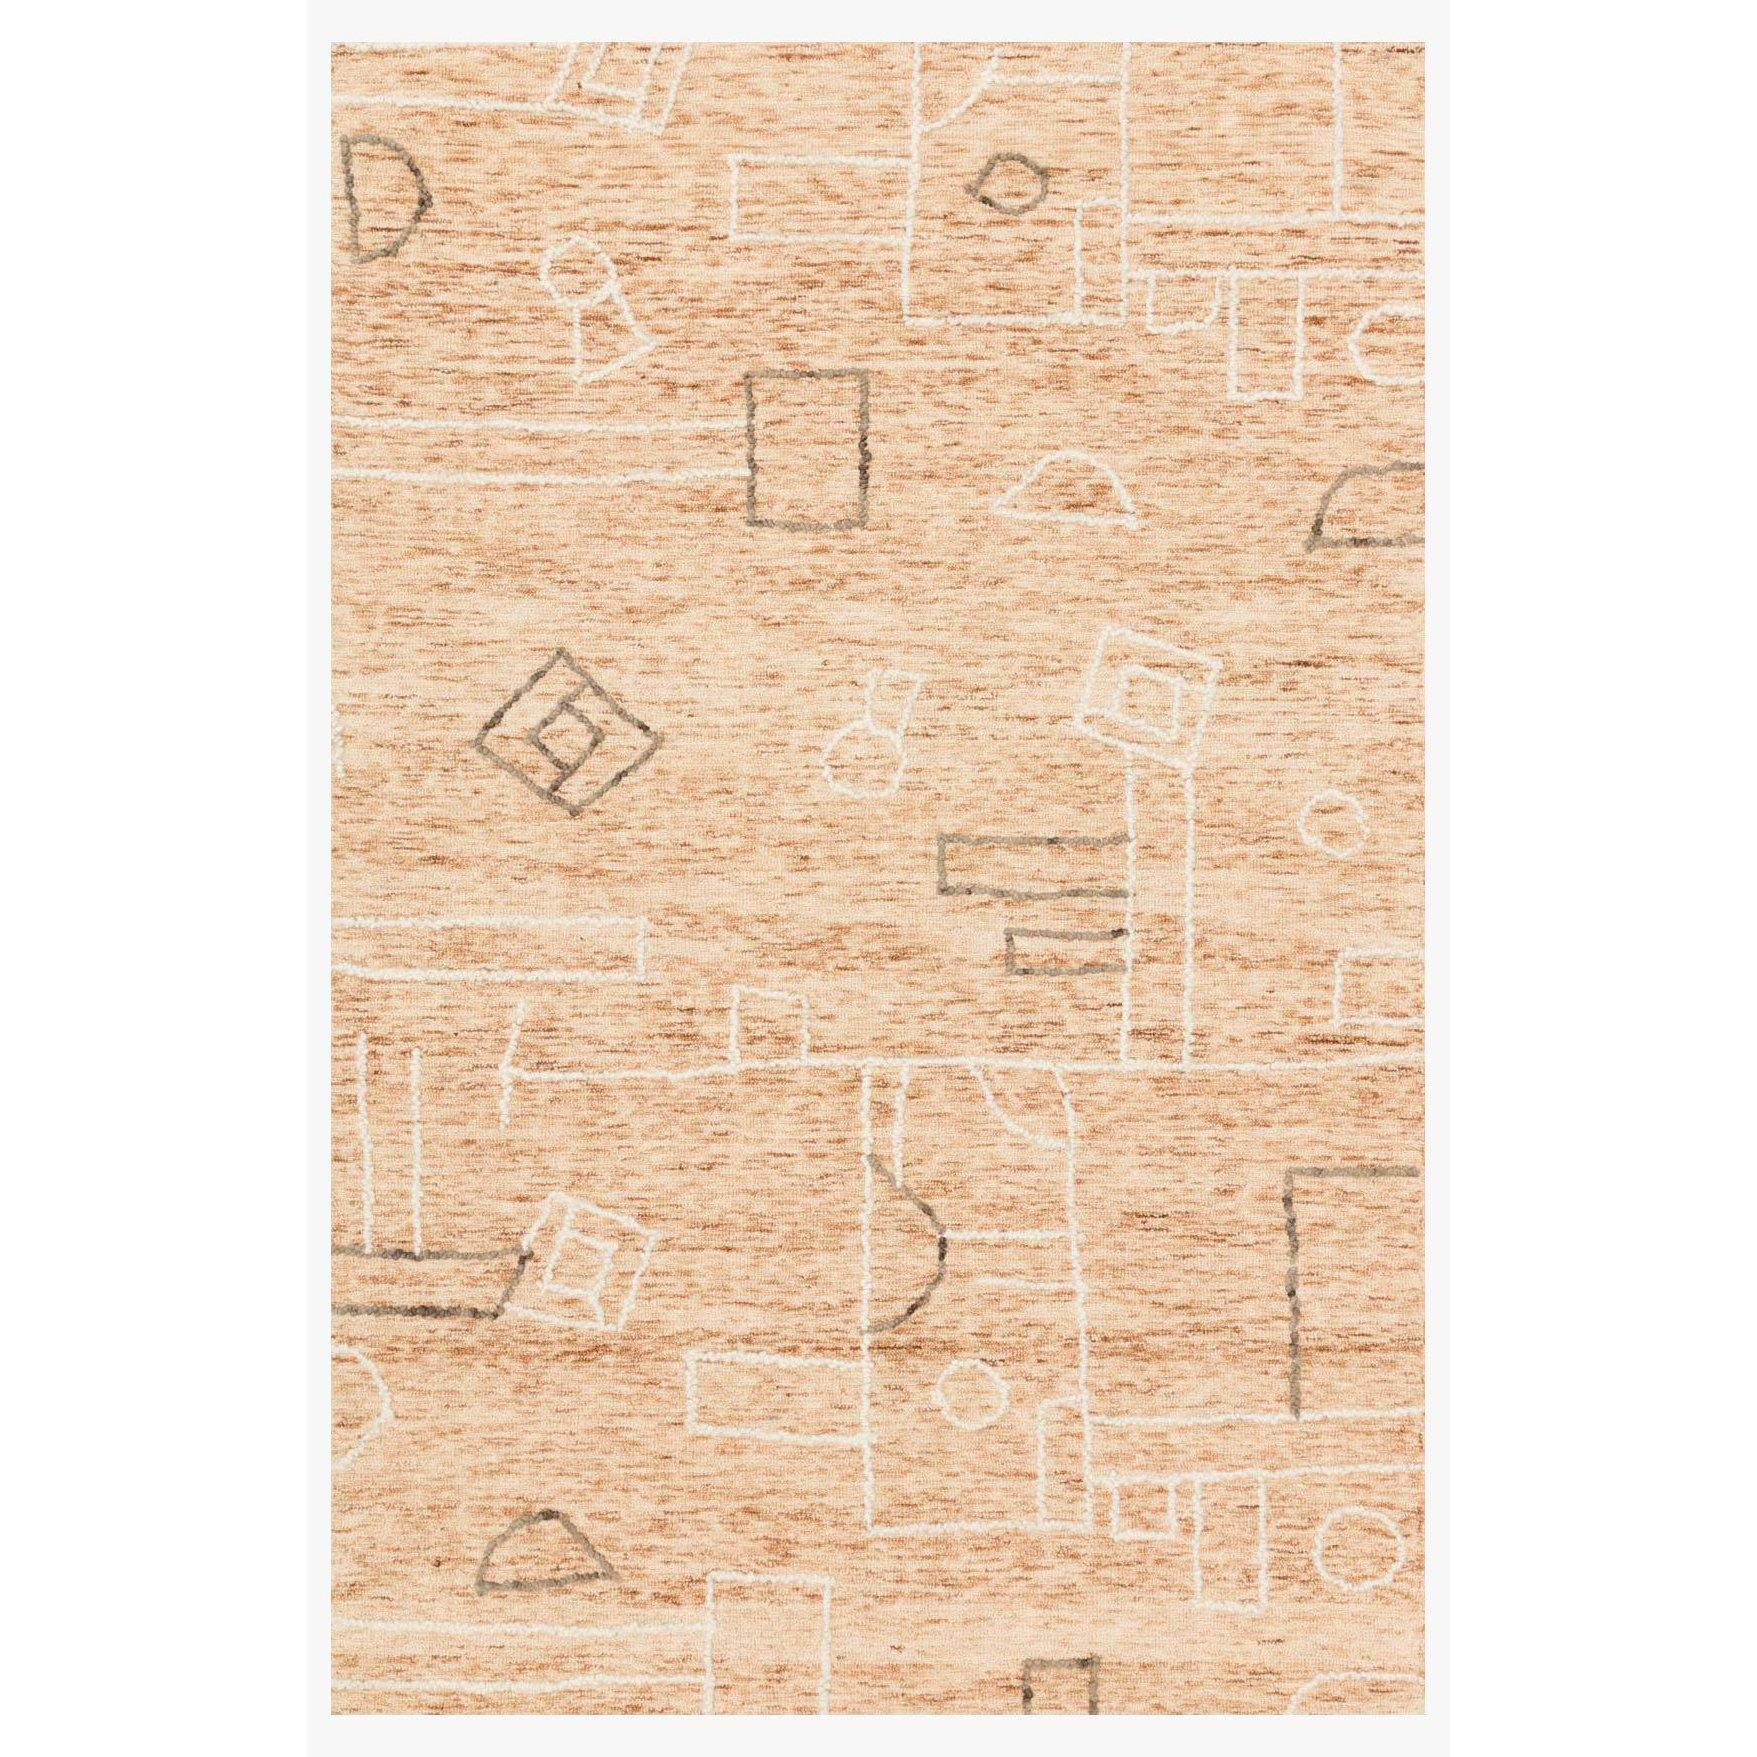 Leela Terracotta / Natural Rug - Reimagine Designs